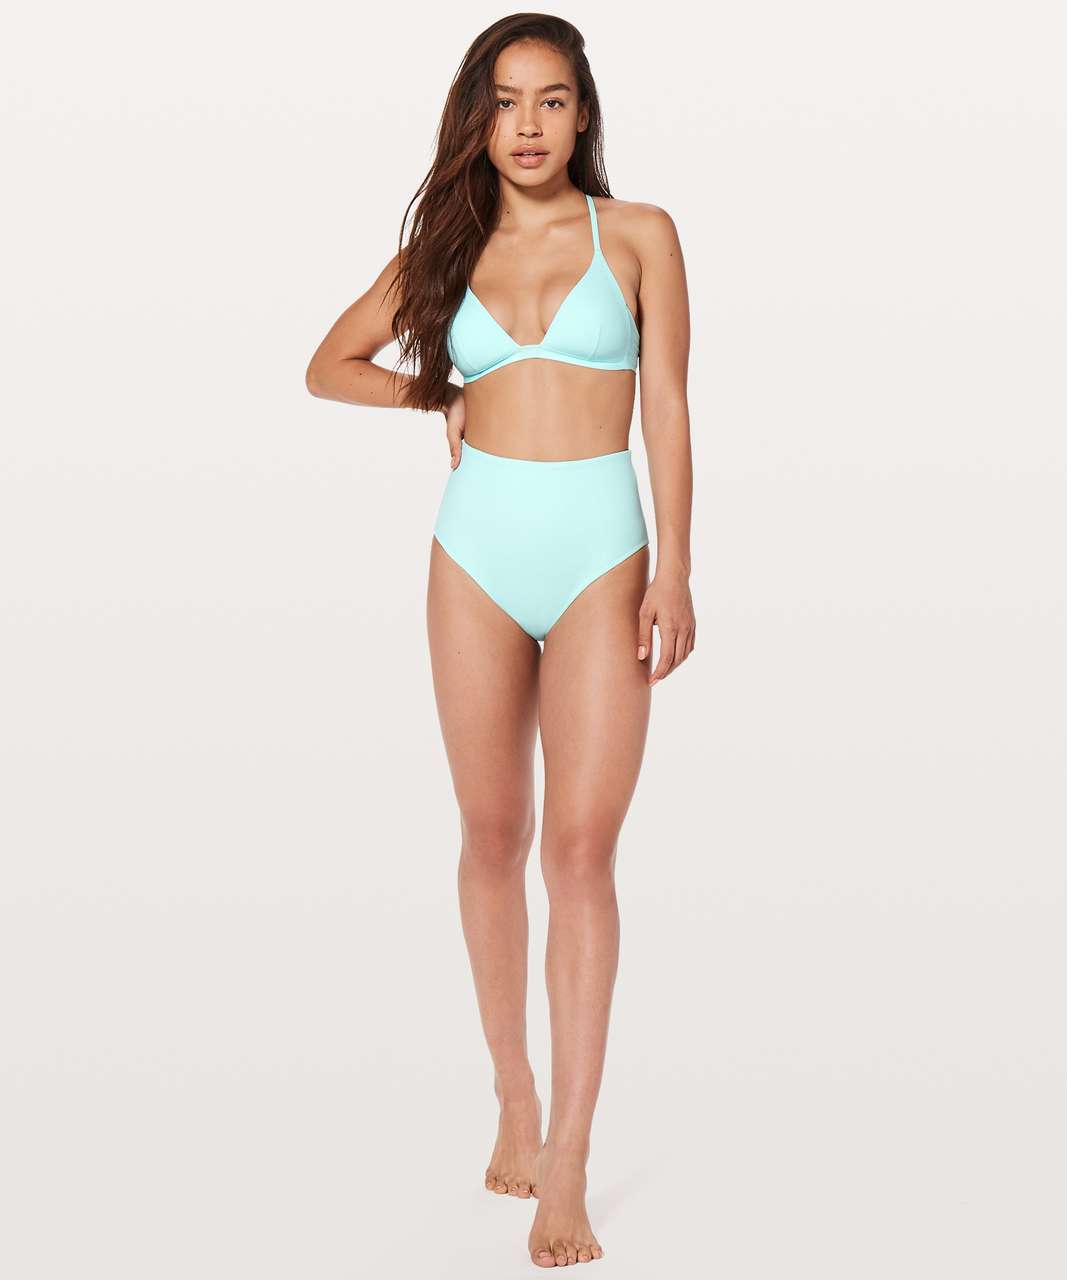 f1db89f9d Lululemon Deep Sea Top - Aquamarine - lulu fanatics